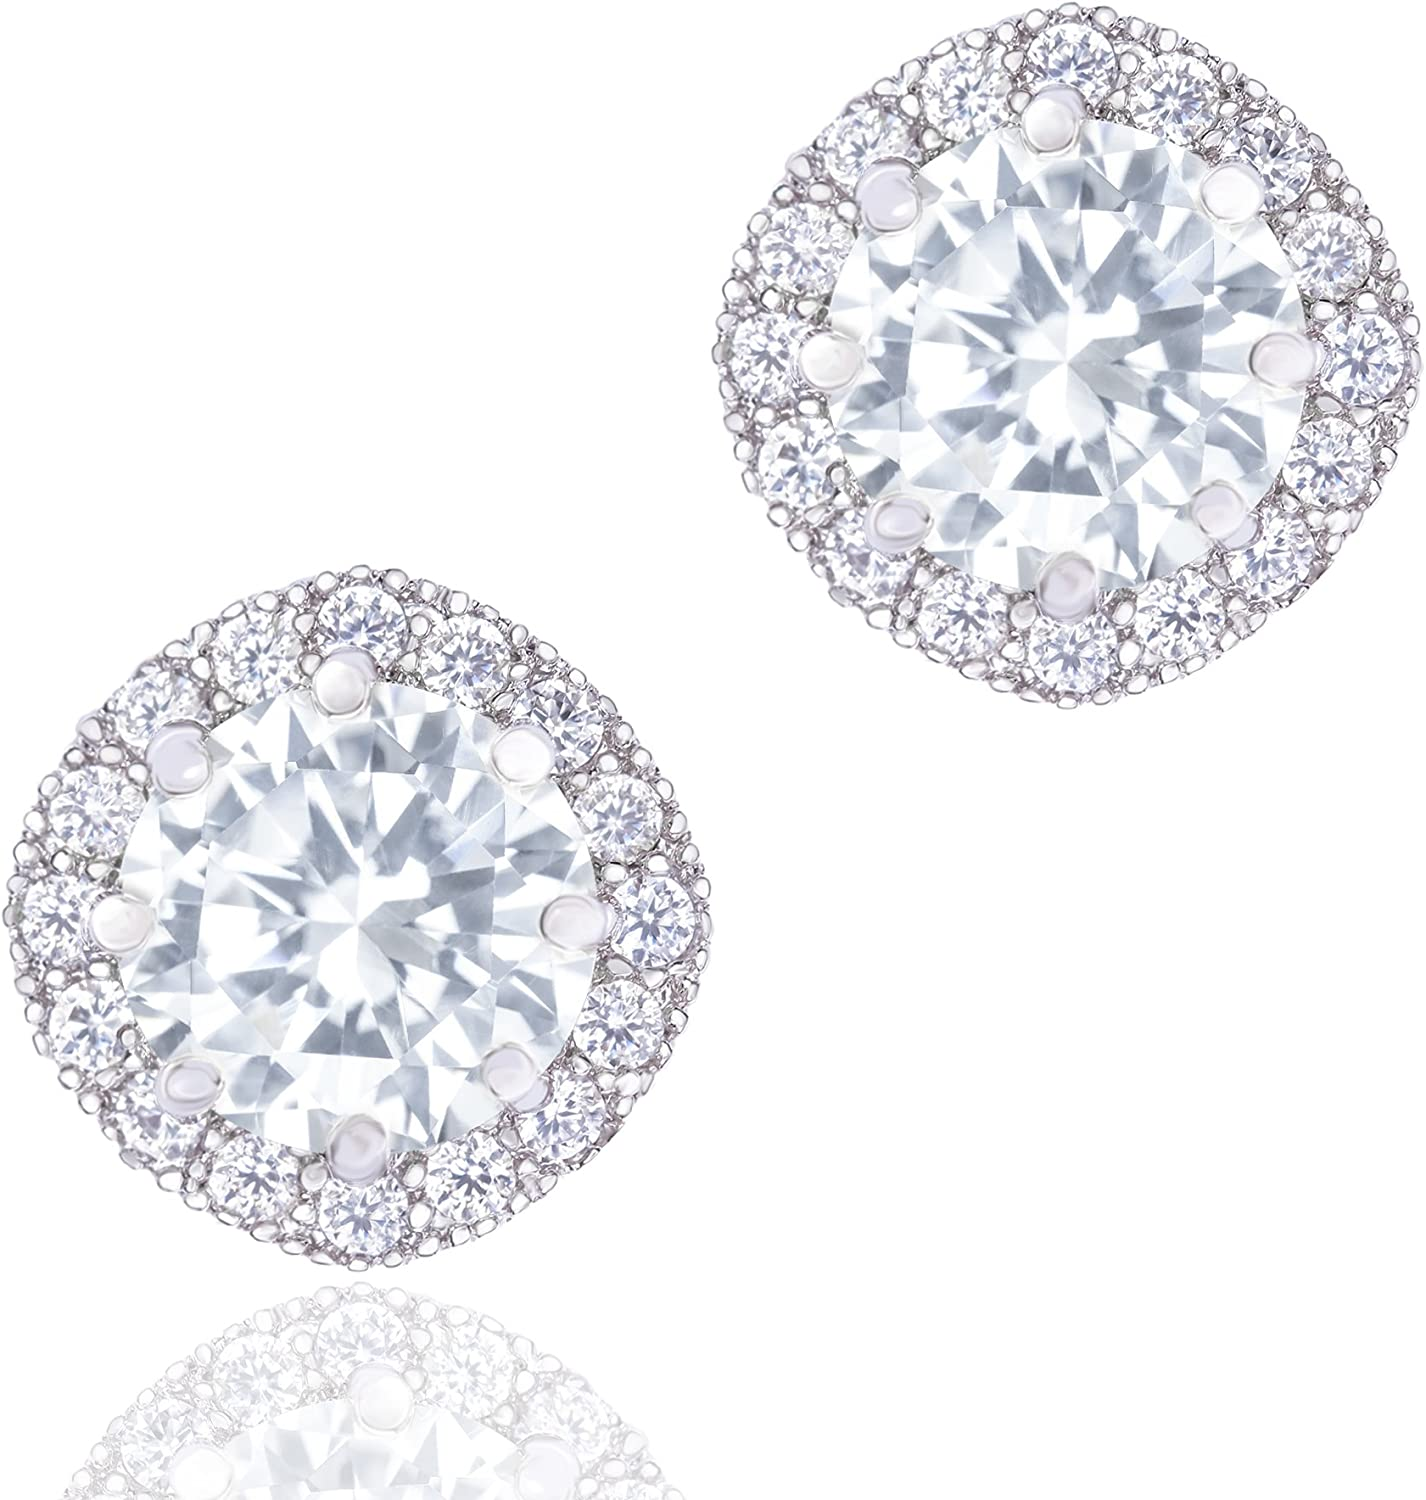 ORROUS CO Special price 18K Gold Plated CZ Earrings Diamond Simulated Stud Limited price f